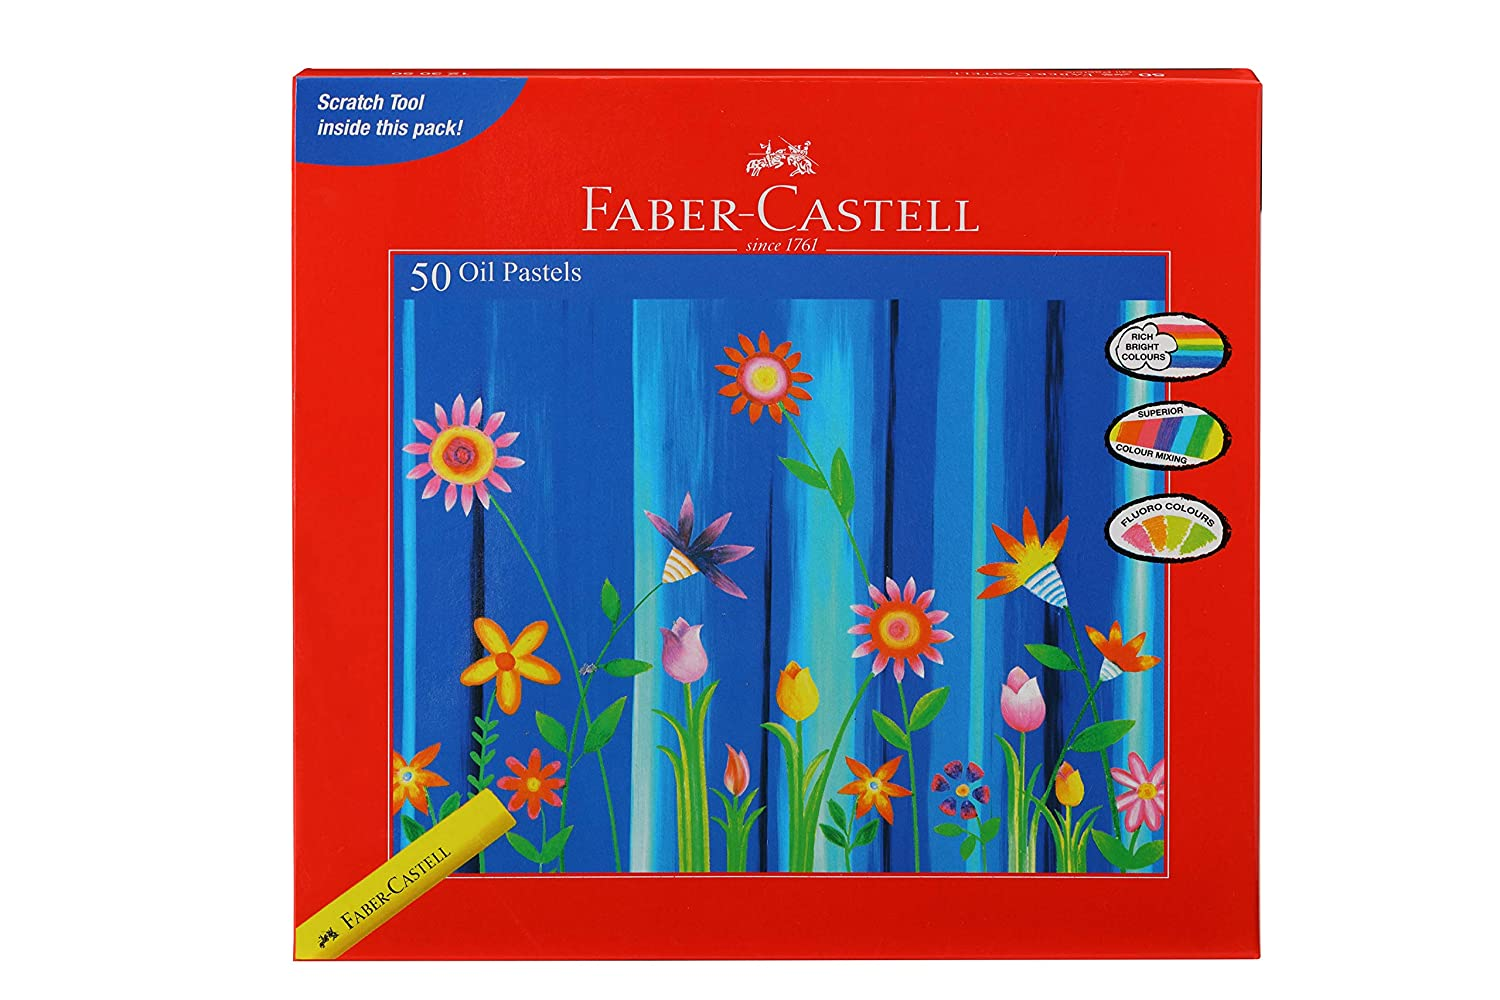 Faber-Castell Oil Pastels (Pack of 50)